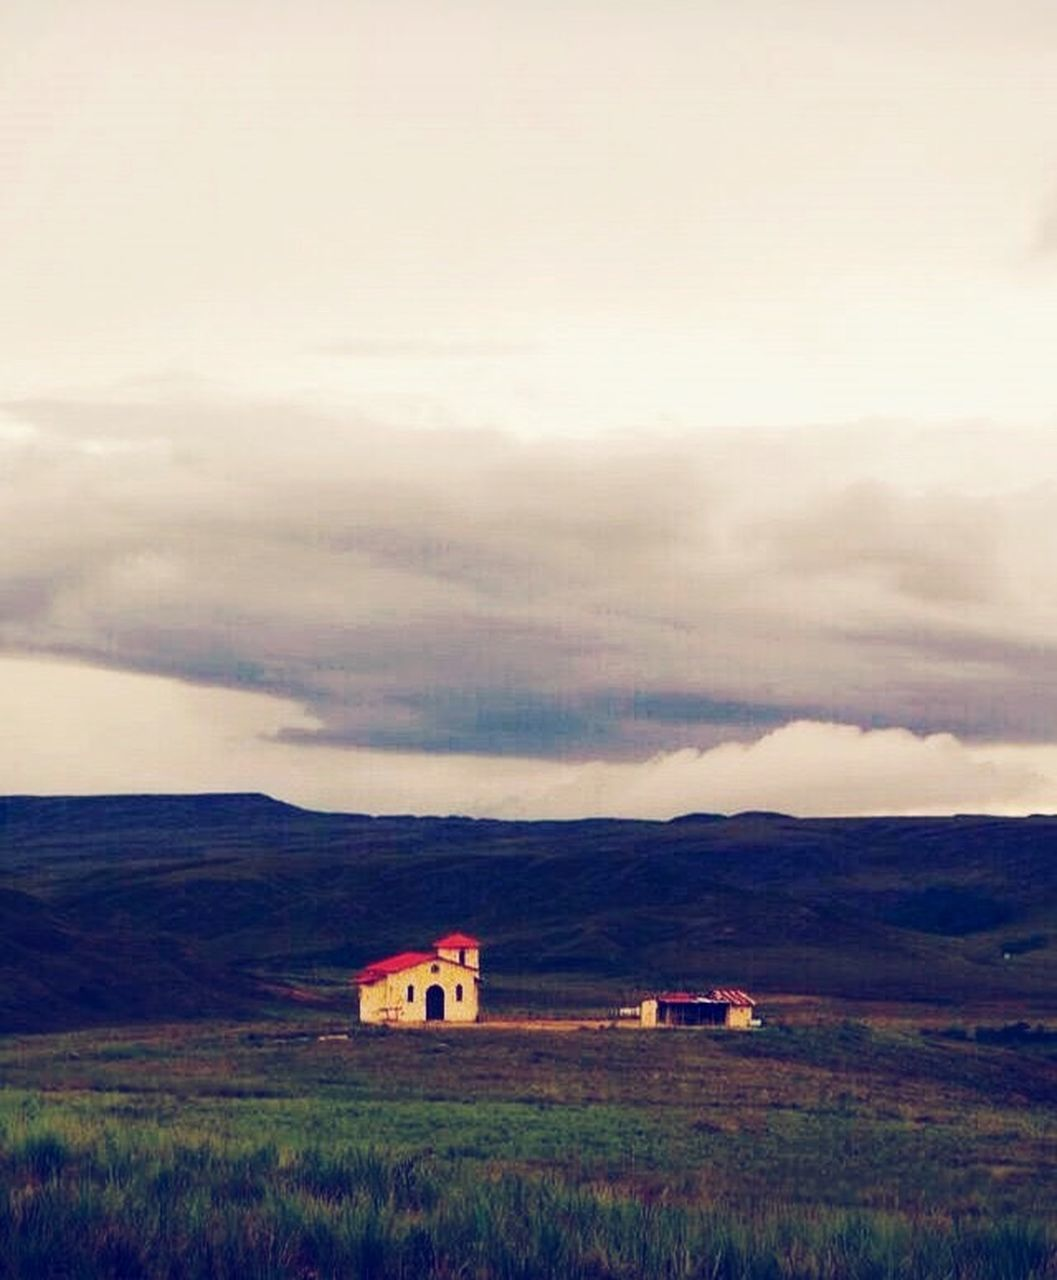 house, built structure, cloud - sky, building exterior, farmhouse, rural scene, landscape, field, outdoors, nature, architecture, residential building, grass, mountain, scenics, agriculture, no people, beauty in nature, day, storm cloud, sky